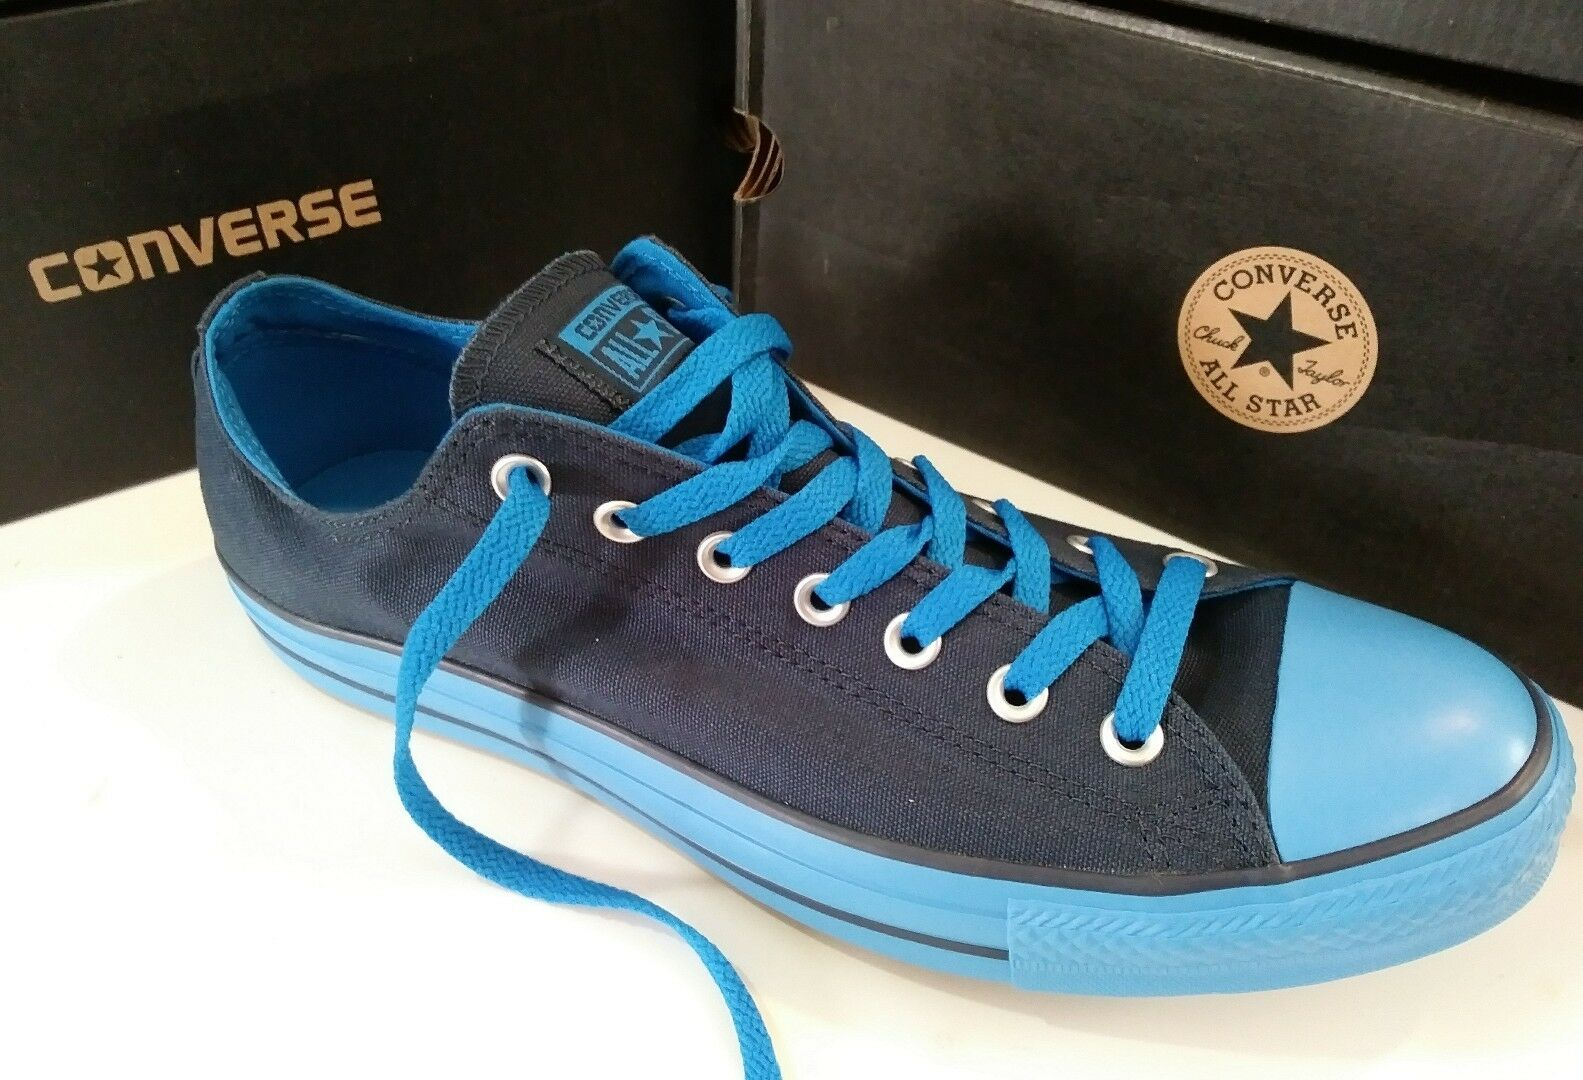 Converse CT ox men's shoes Size 11.5 Gorgeous bluee and Navy